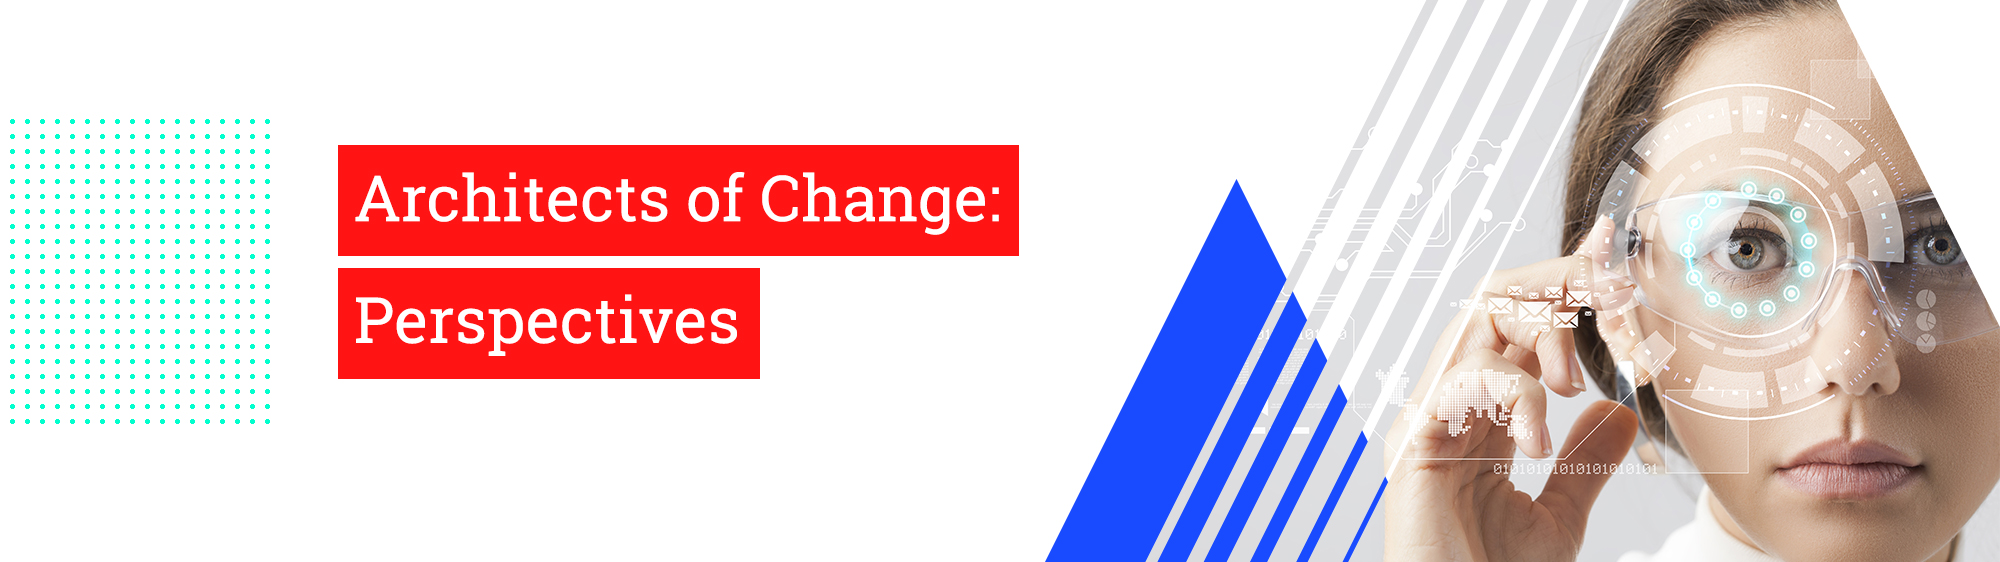 Architects of Change Perspective